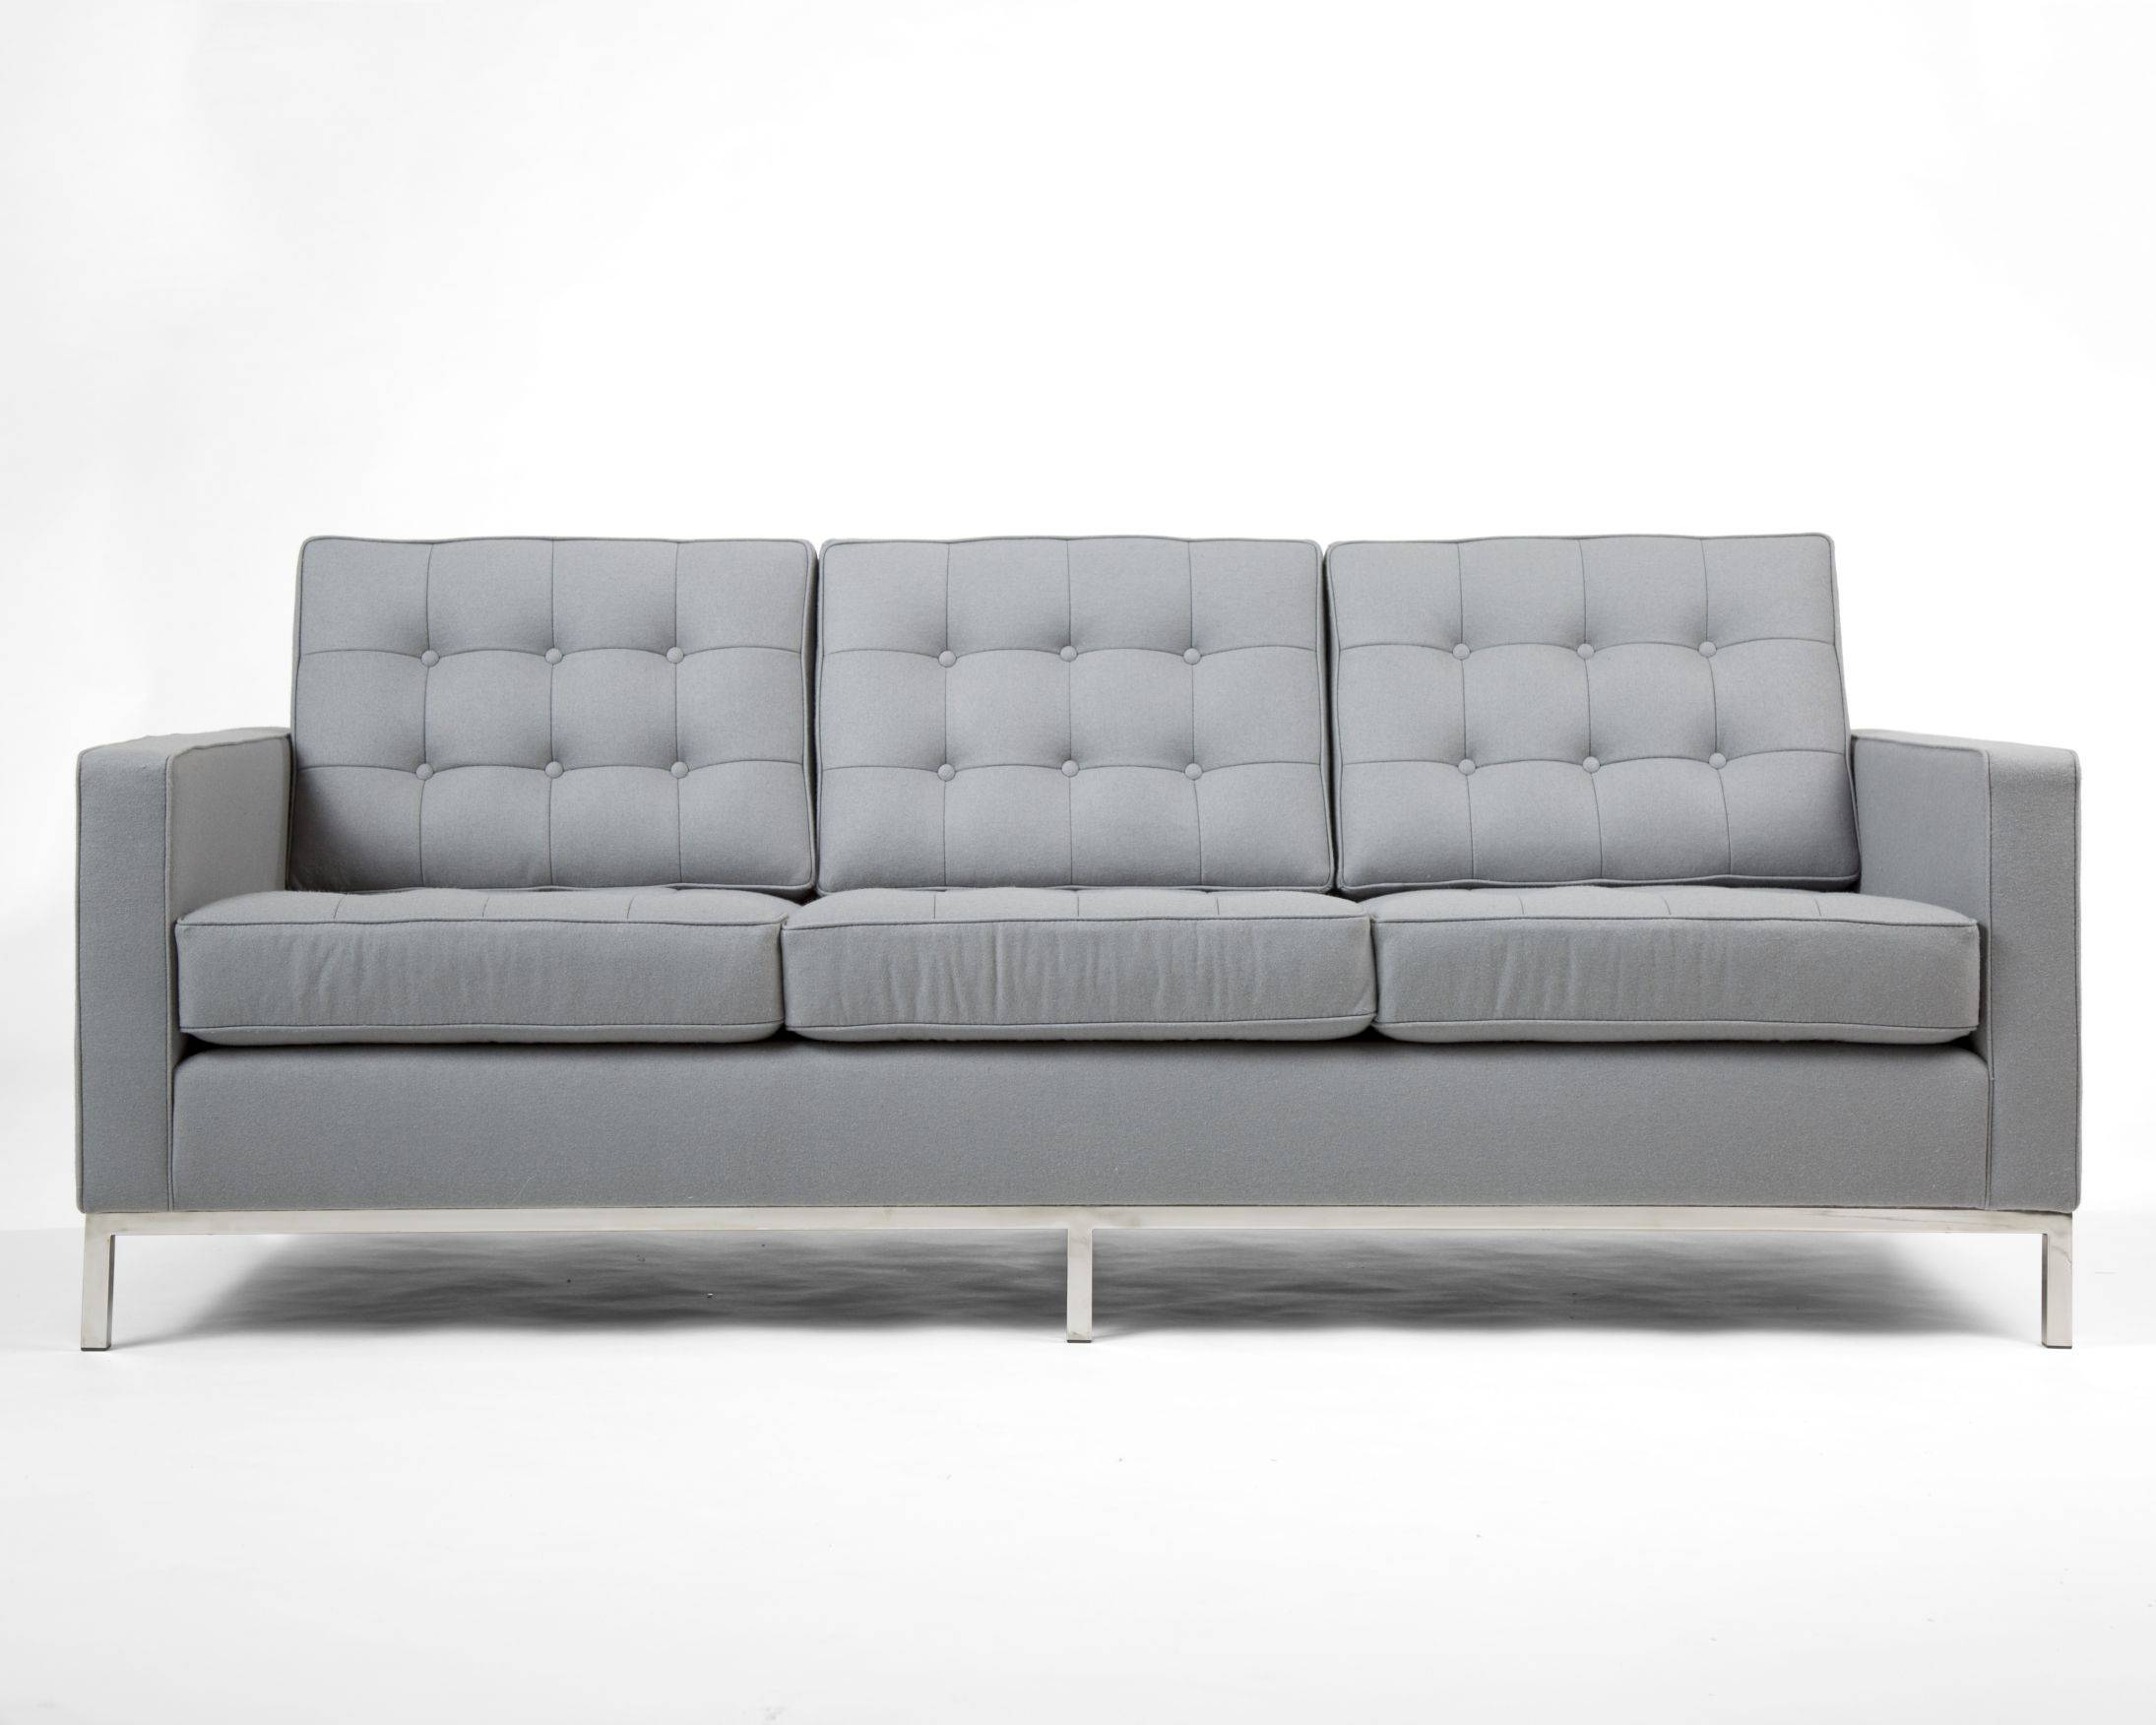 Florence Sofa | Reproduction | Mid Century Modern inside Florence Sofa Beds (Image 8 of 25)